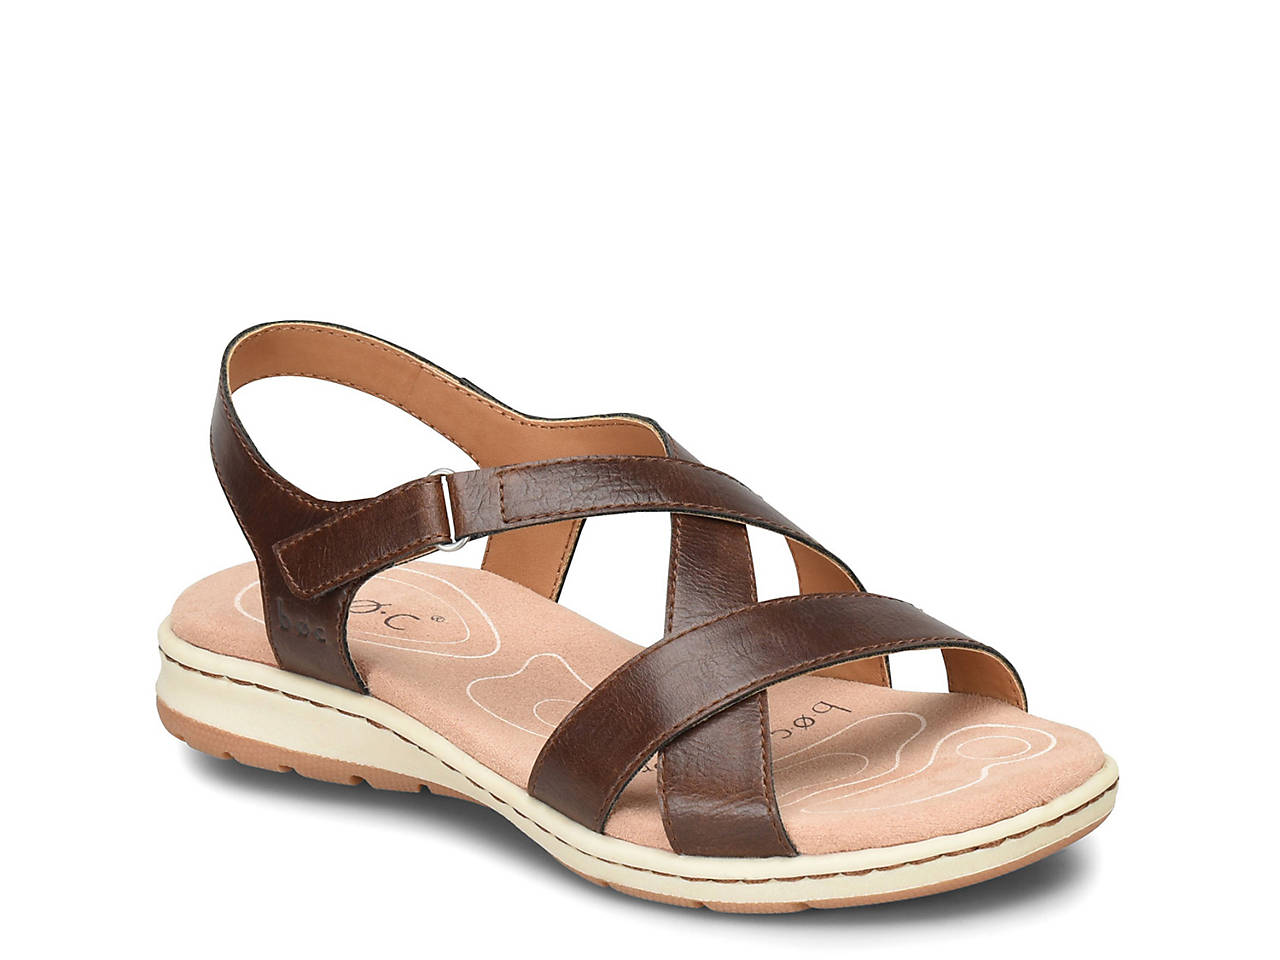 3dc8028bf52 b.o.c Camelia Wedge Sandal Men s Shoes